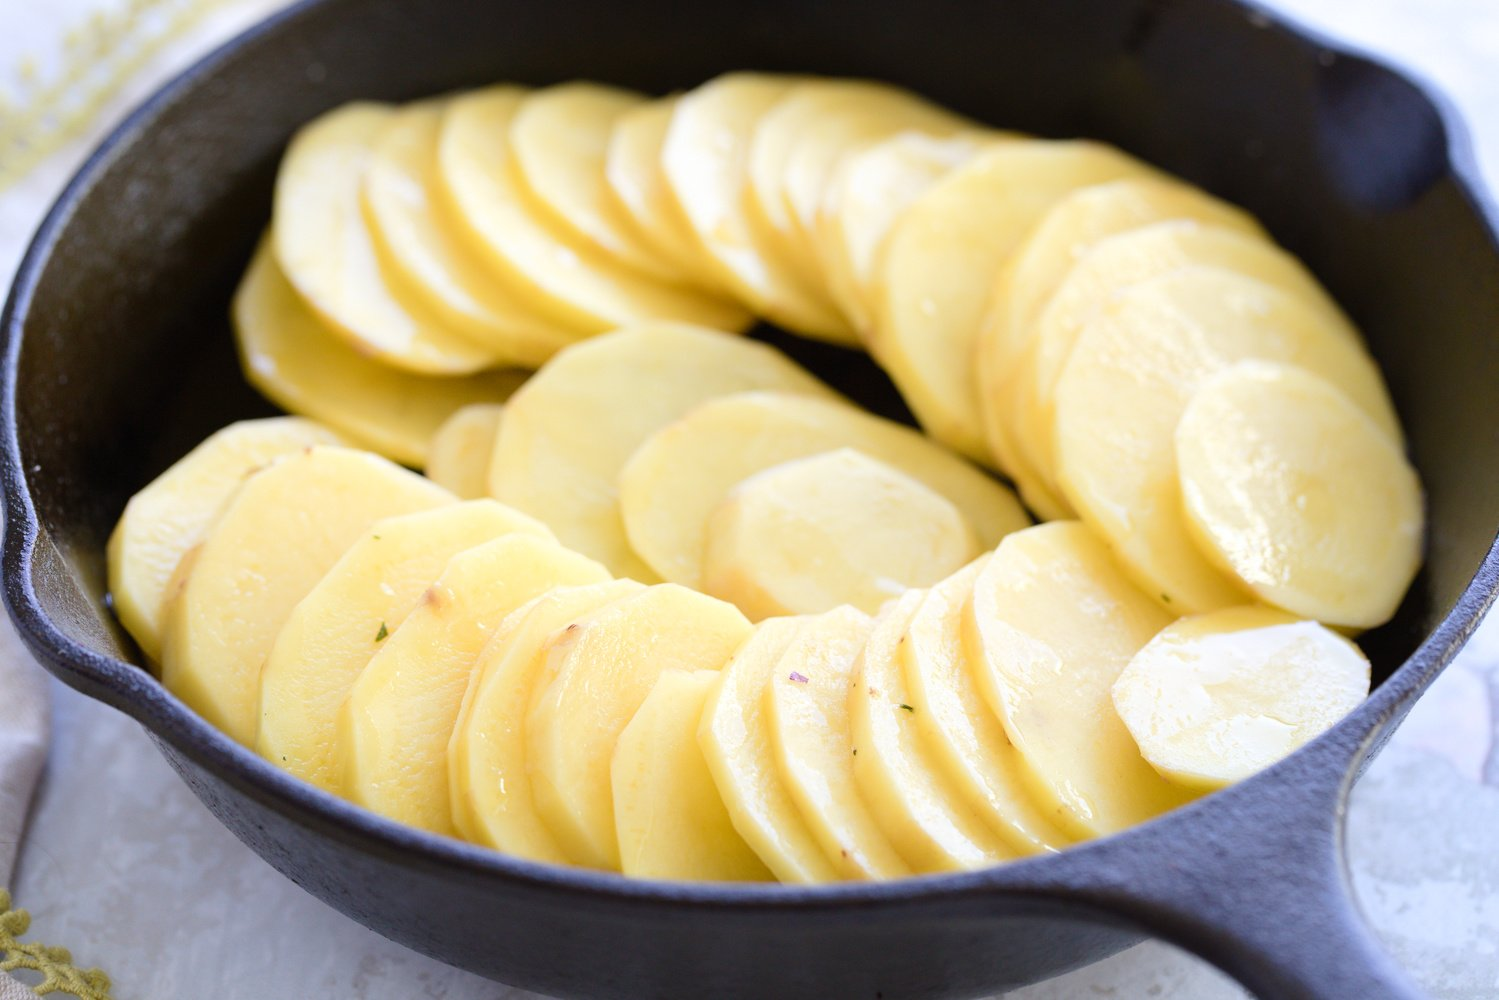 sliced potatoes in a cast iron skillet